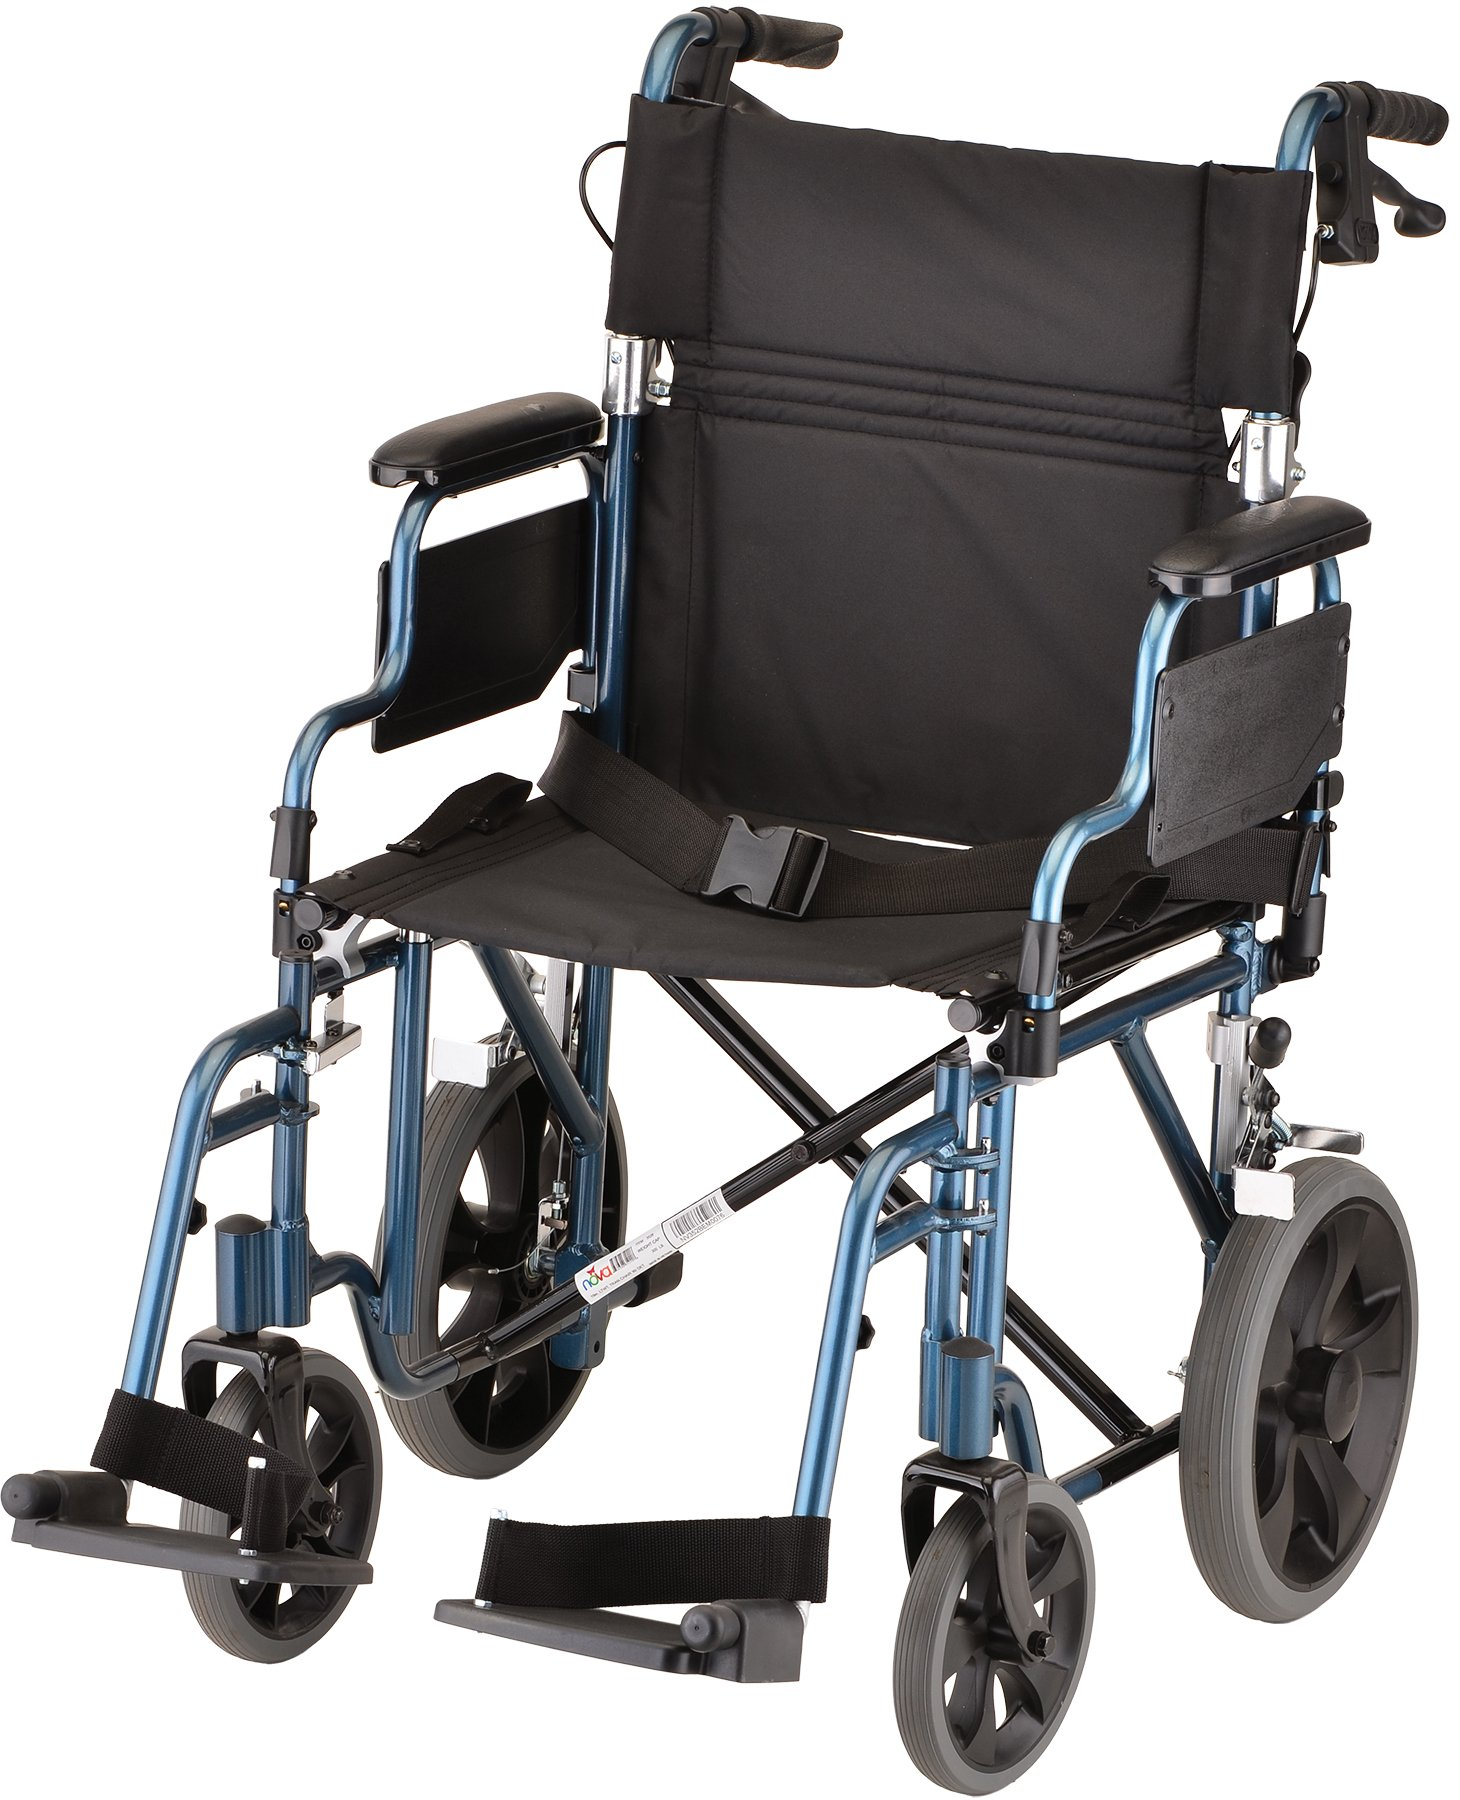 NOVA Lightweight Transport Chair with Locking Hand Brakes, 12'' Rear Wheels, Removable & Flip Up Arms for Easy Transfer, Anti-Tippers Included, Blue by NOVA Medical Products